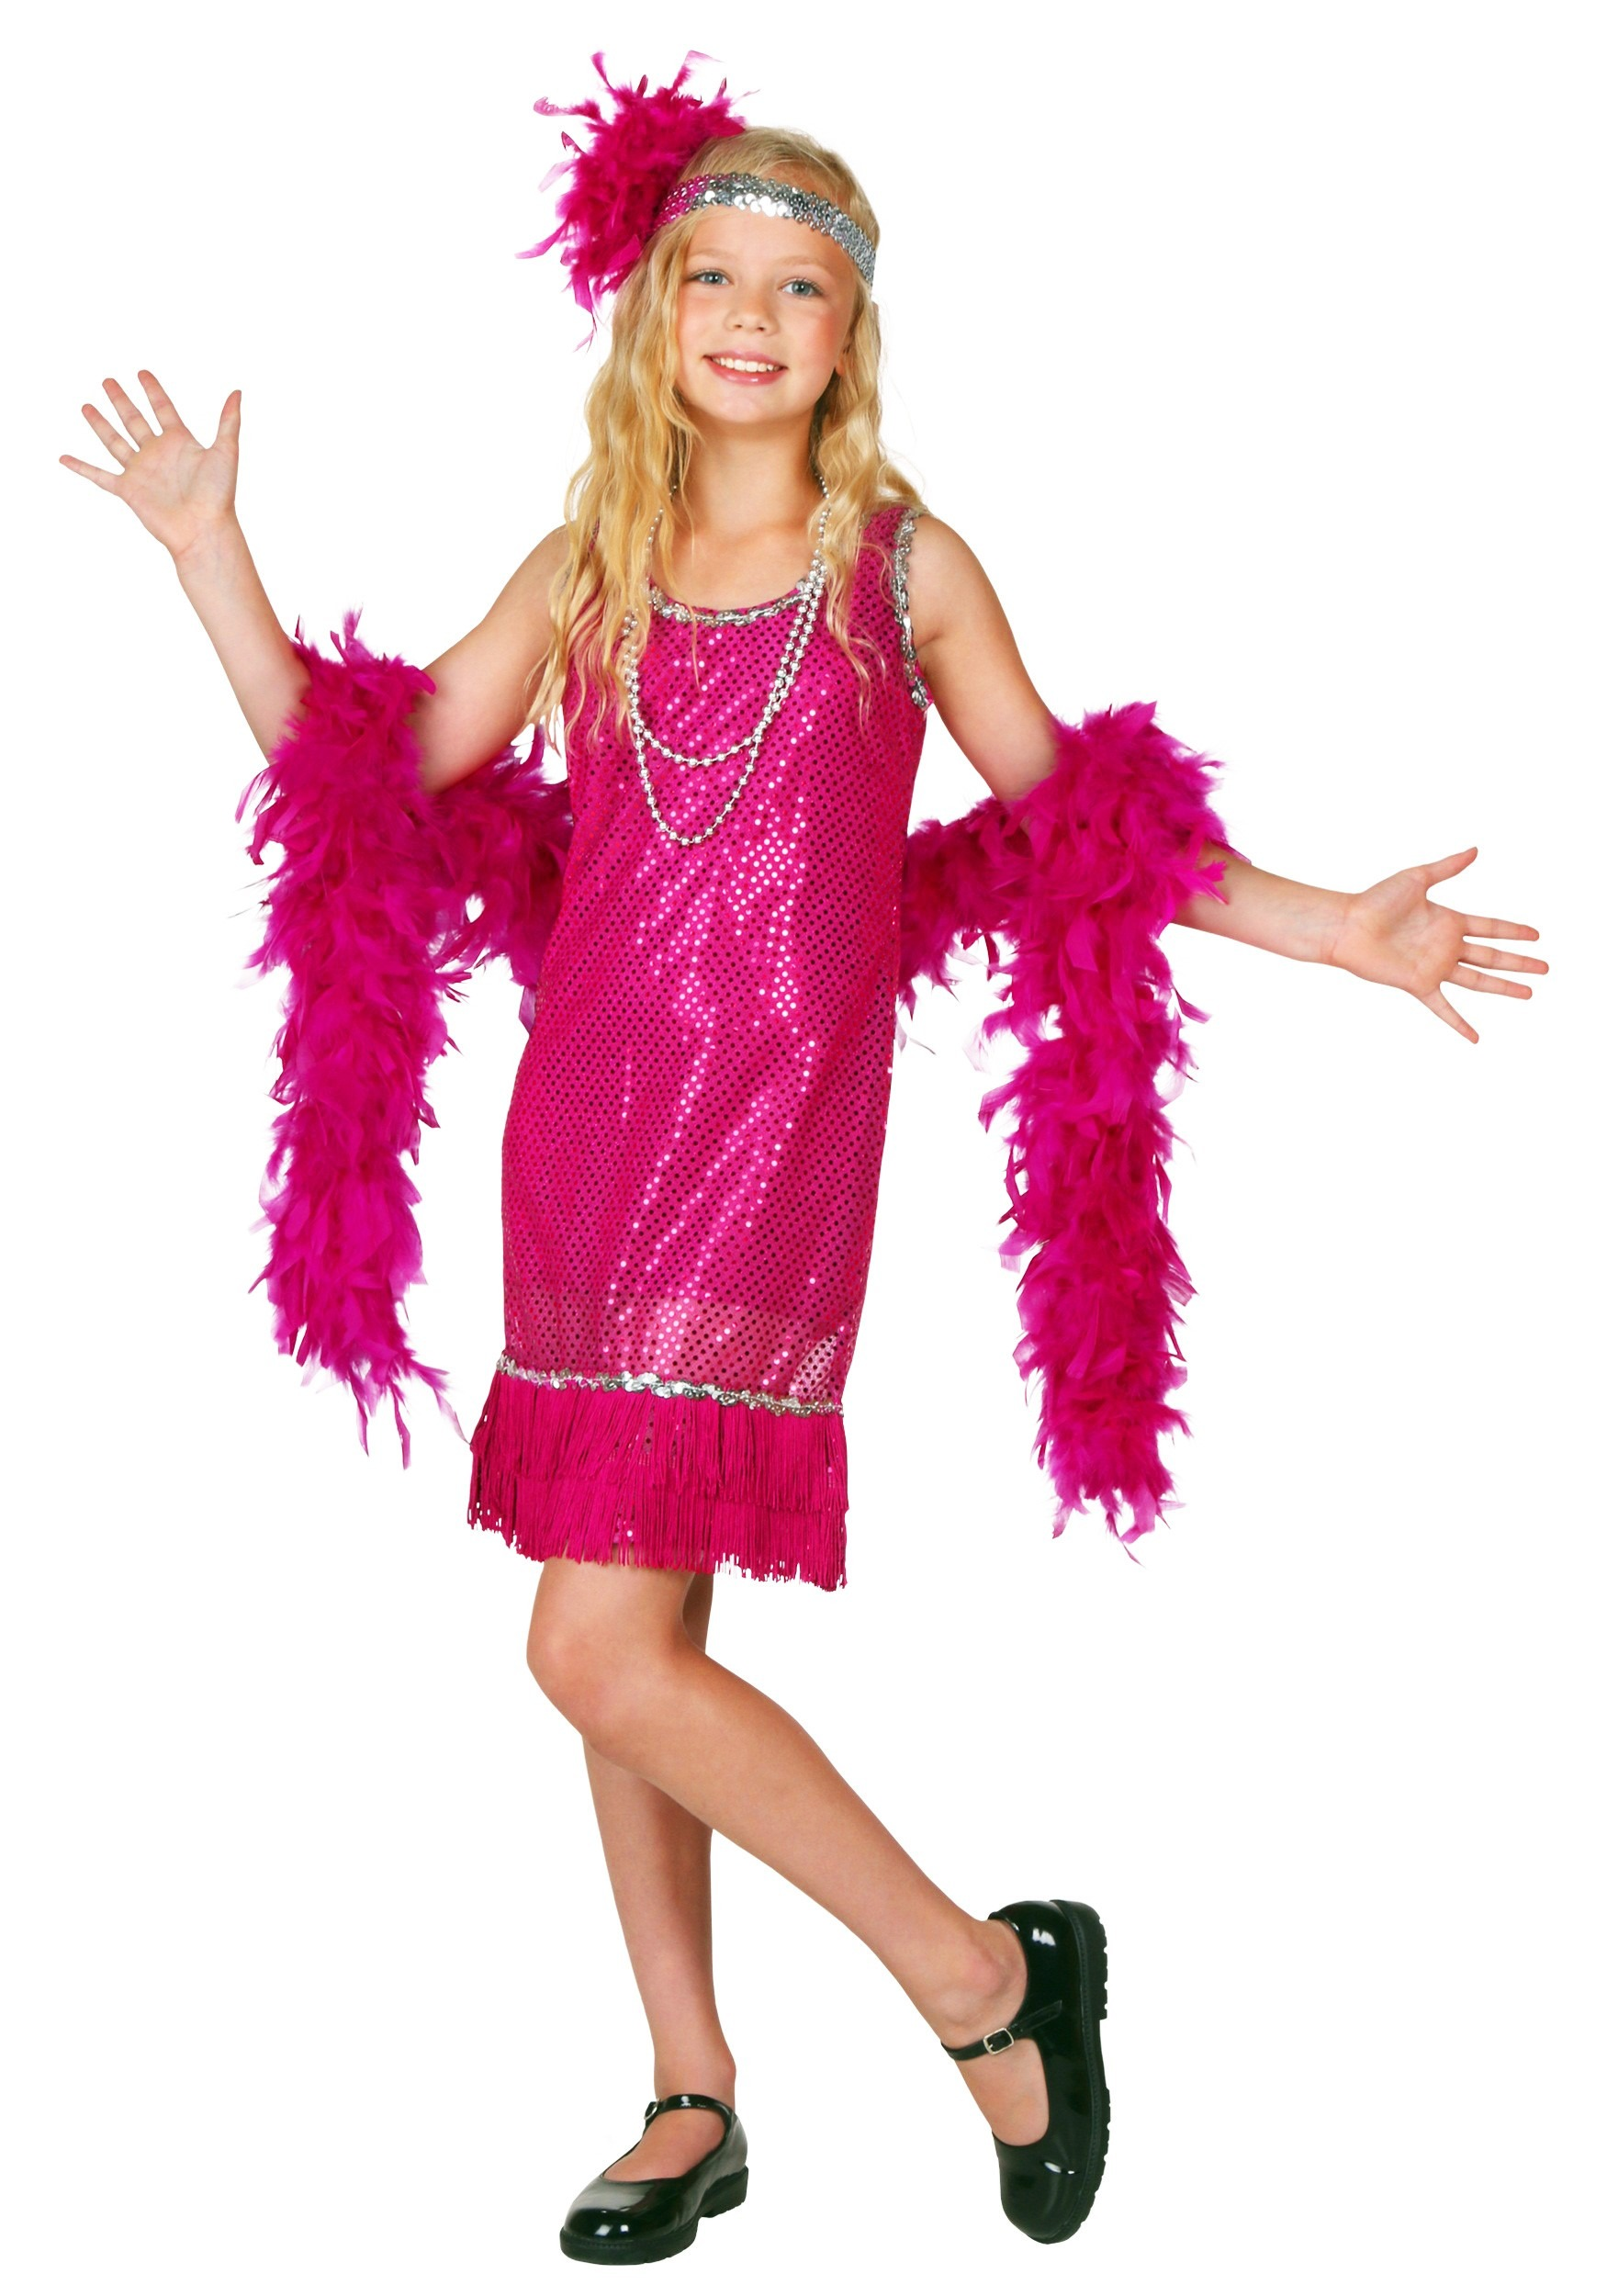 f4bd505117 Child Fuchsia Sequin And Fringe Flapper Costume. Pink And Black Flapper  Dress